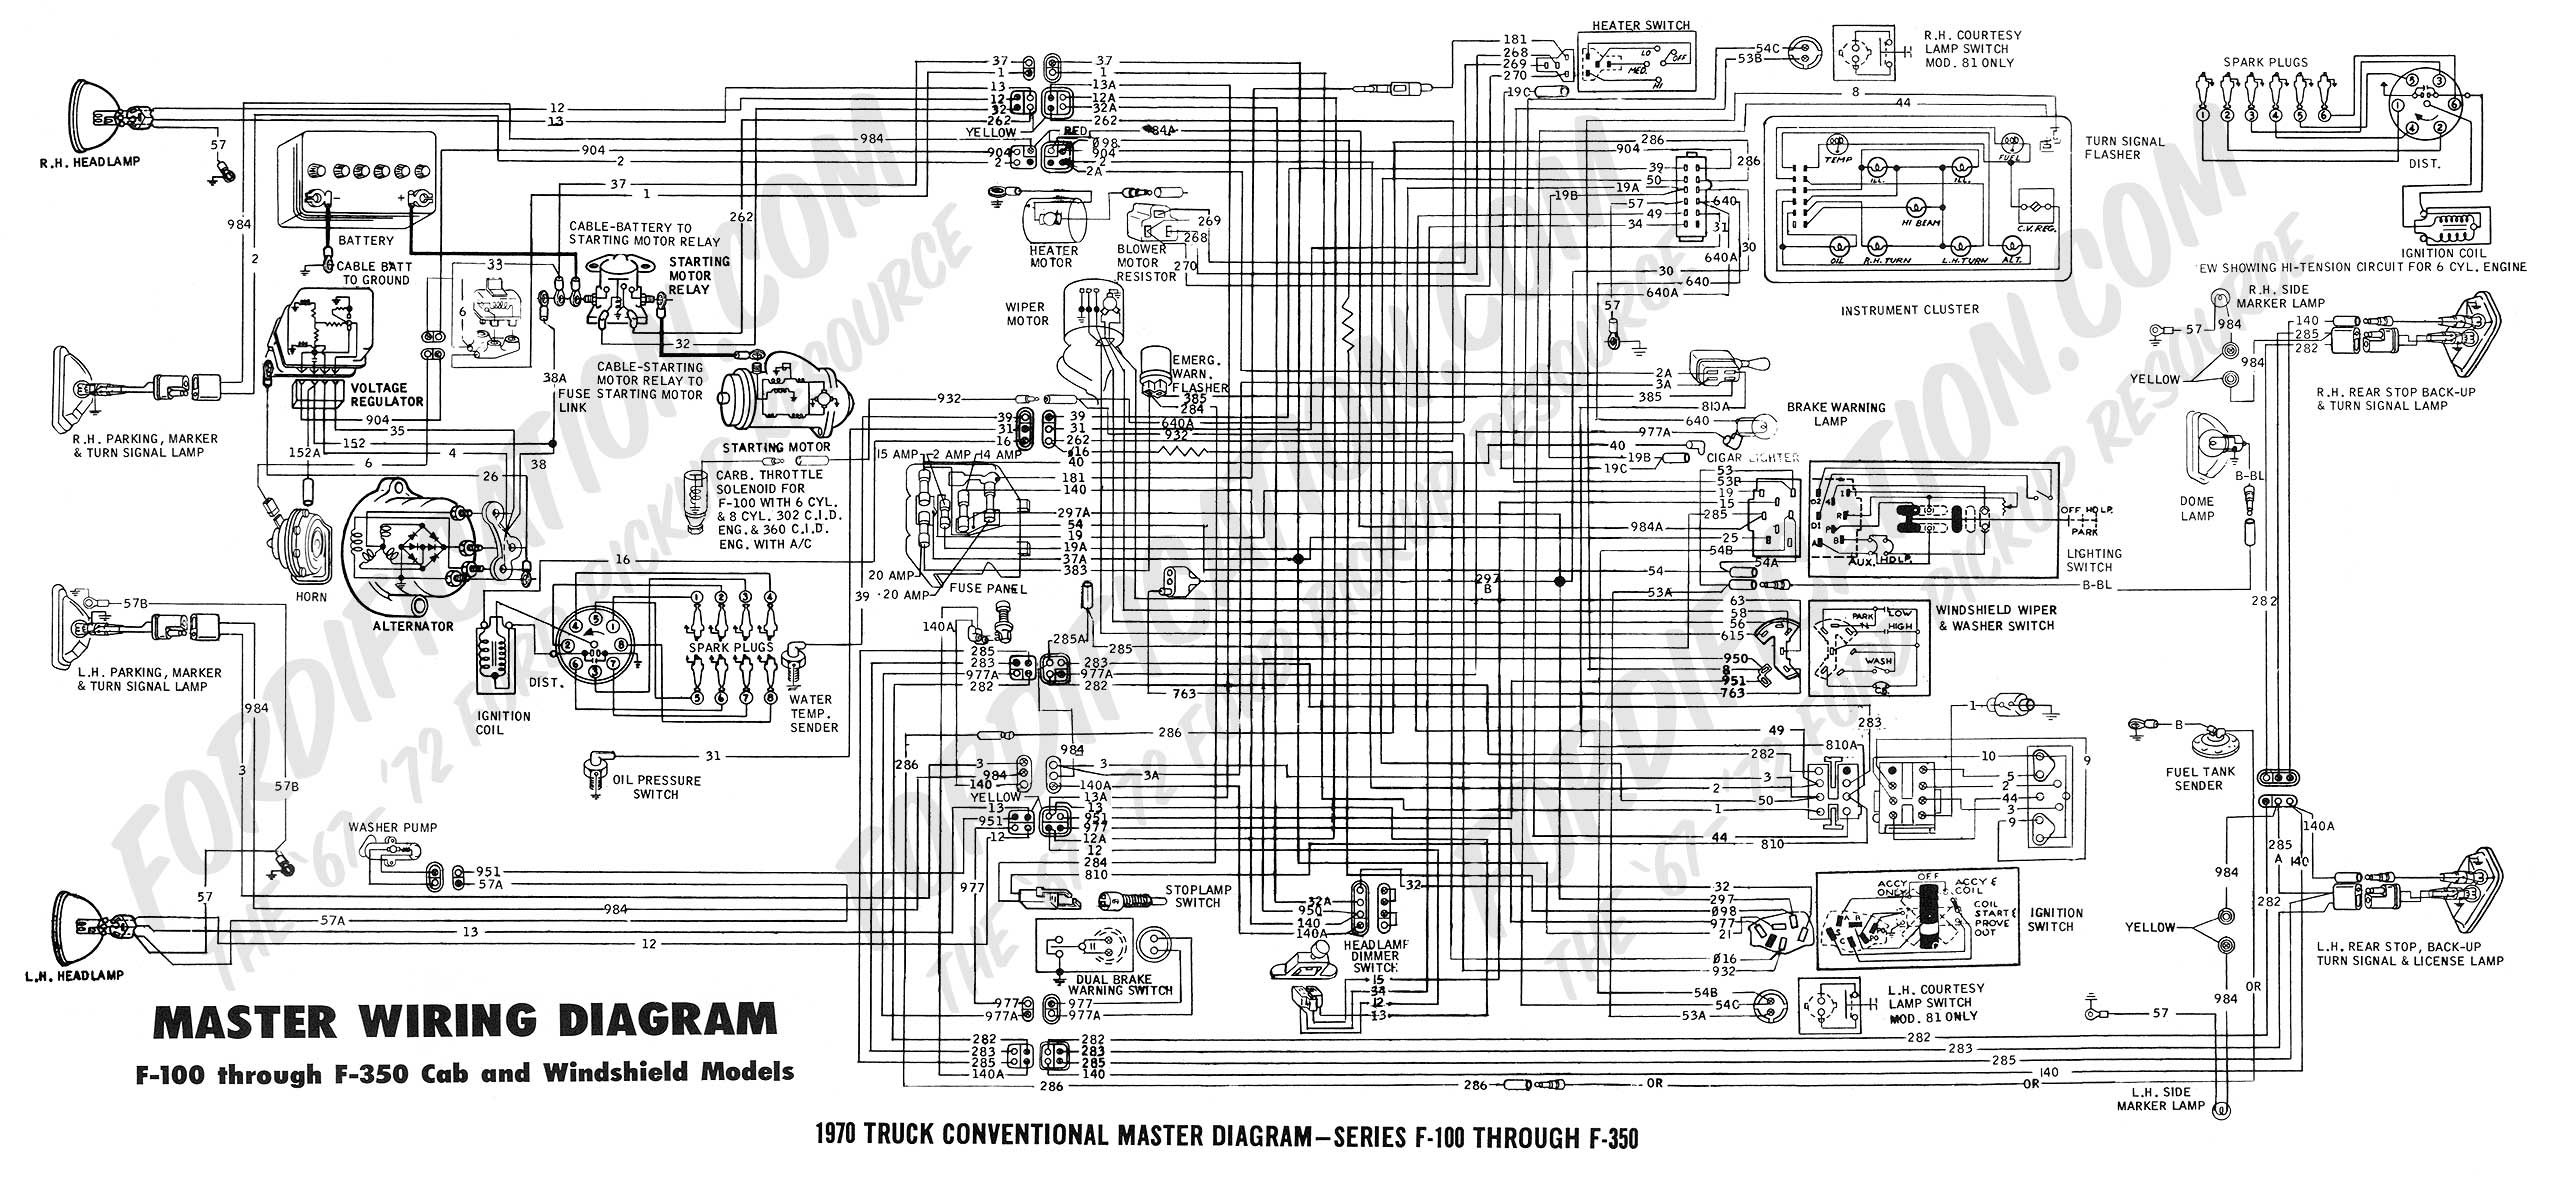 Tach Wiring Diagrams Ford Diagram Online For Data Pro